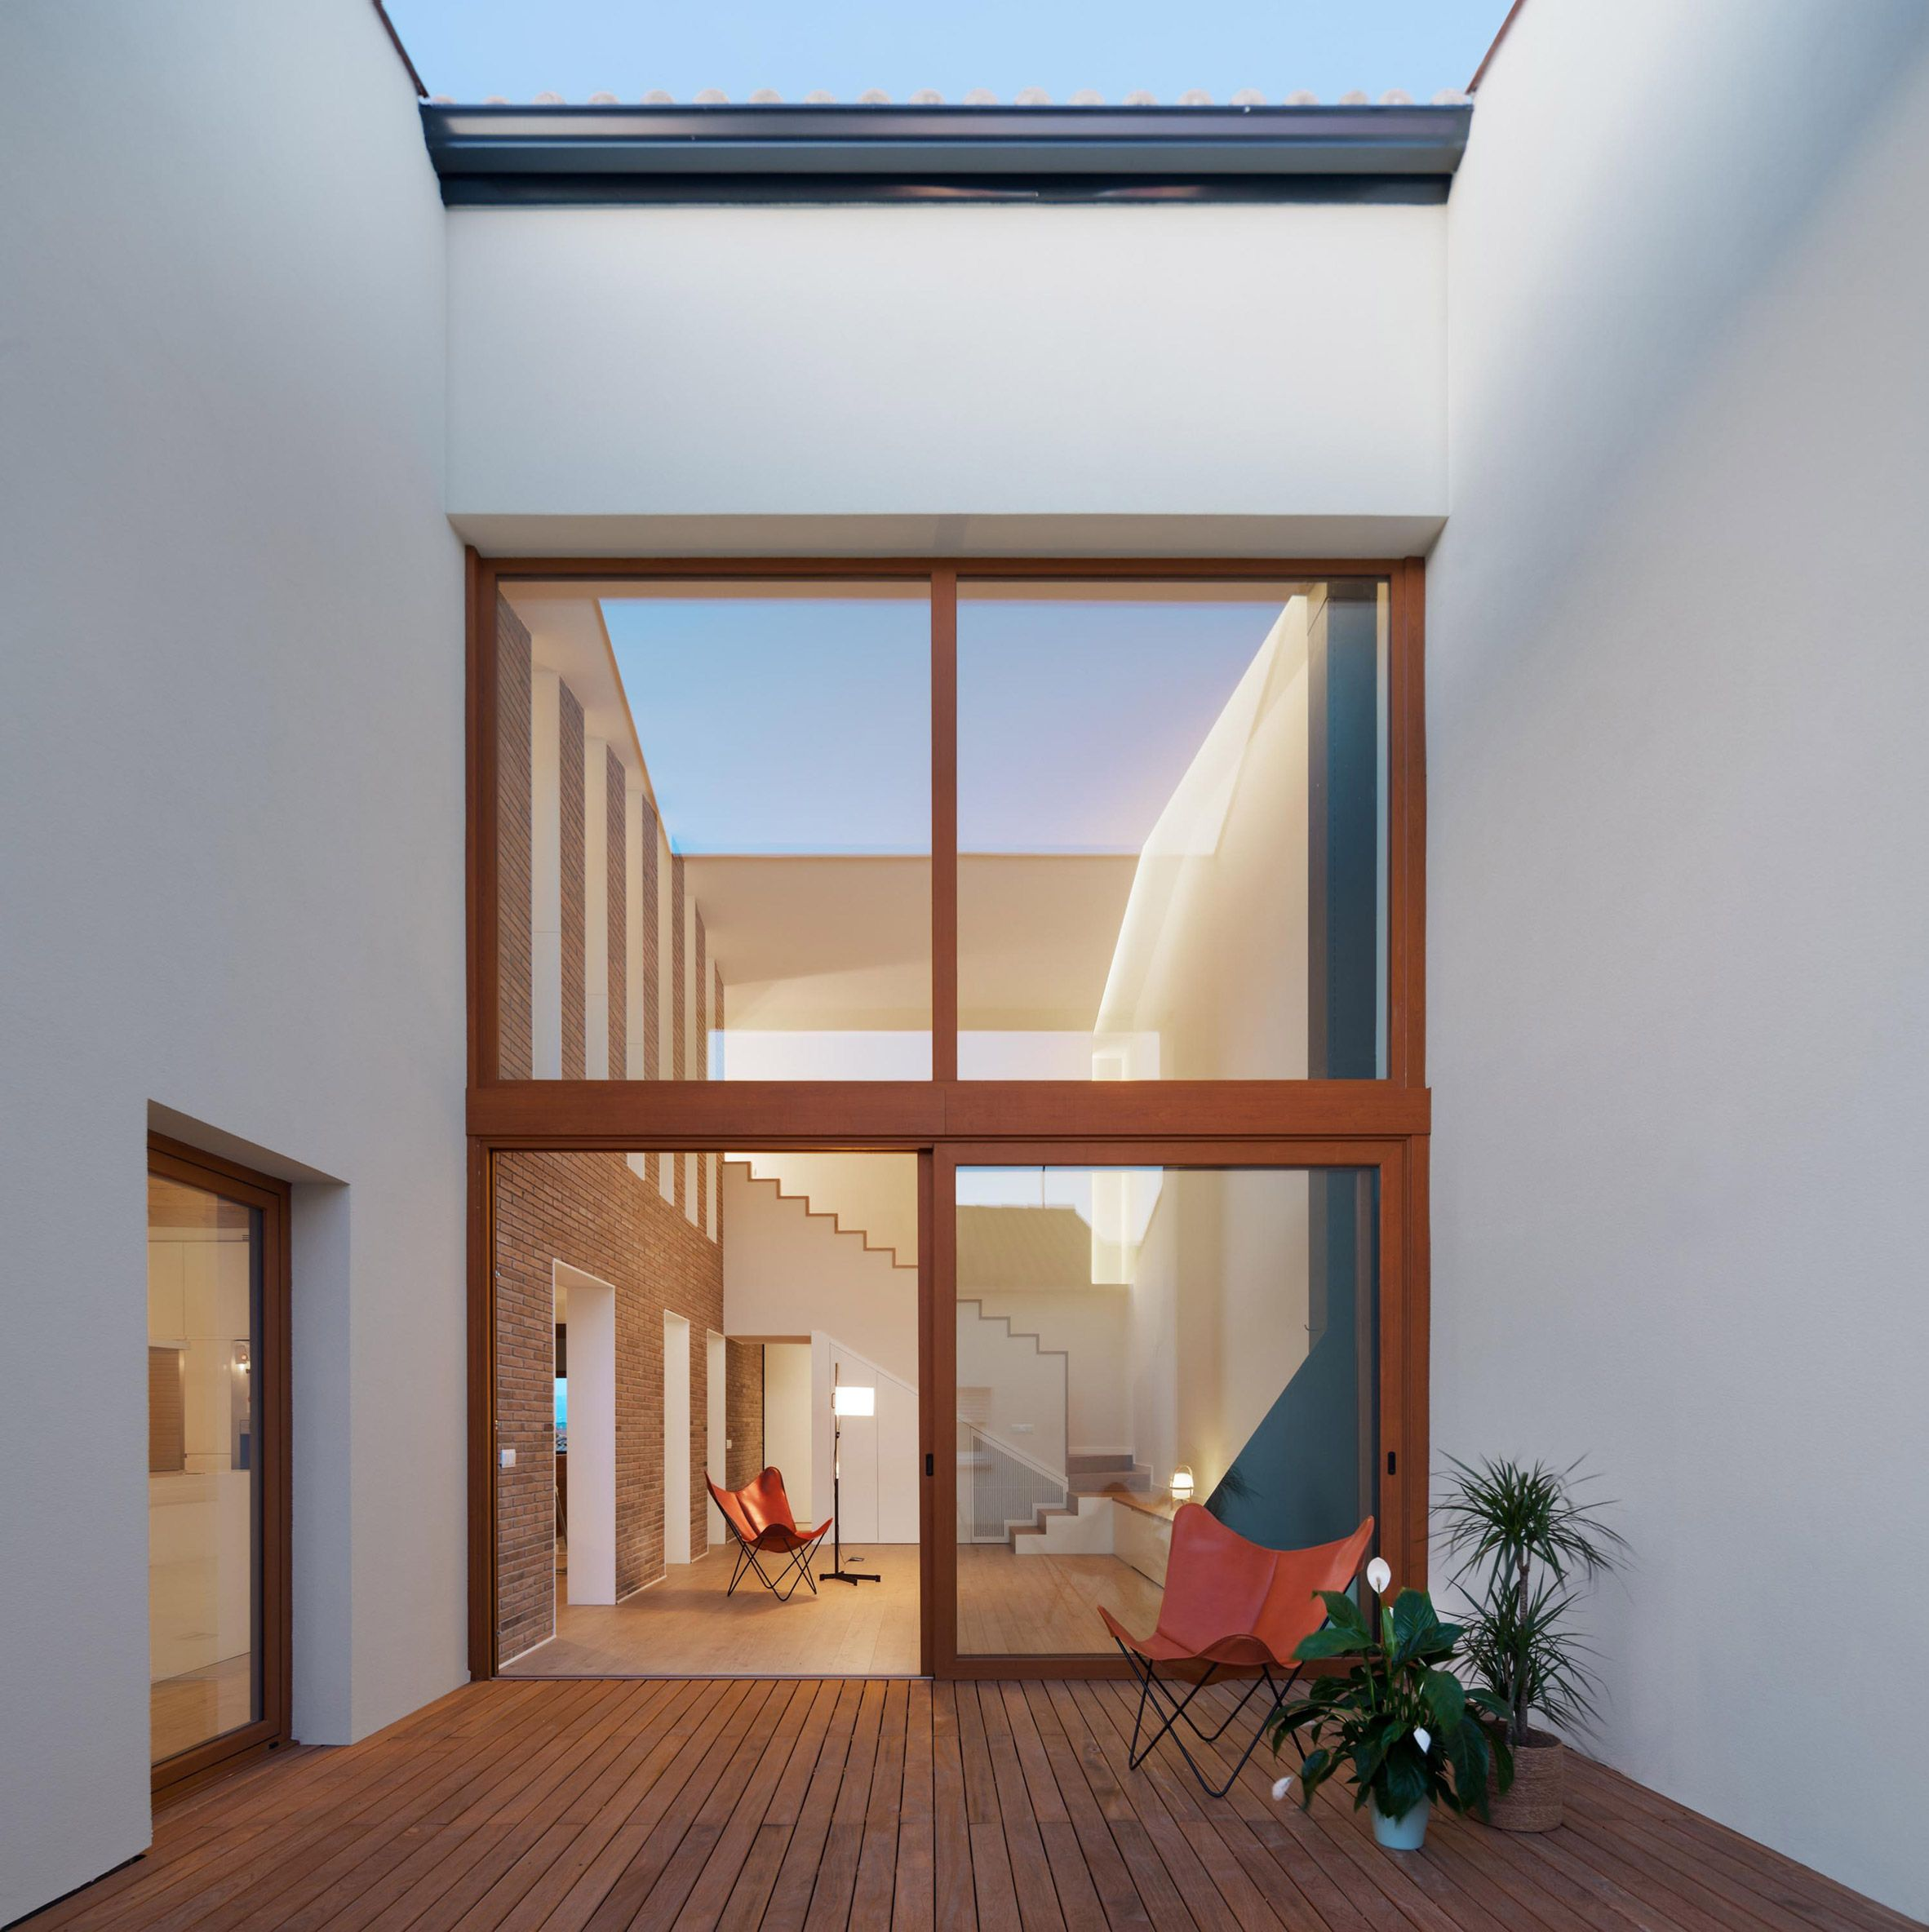 Family Home By Hiha Studio With Double Height Rooms And Rammed